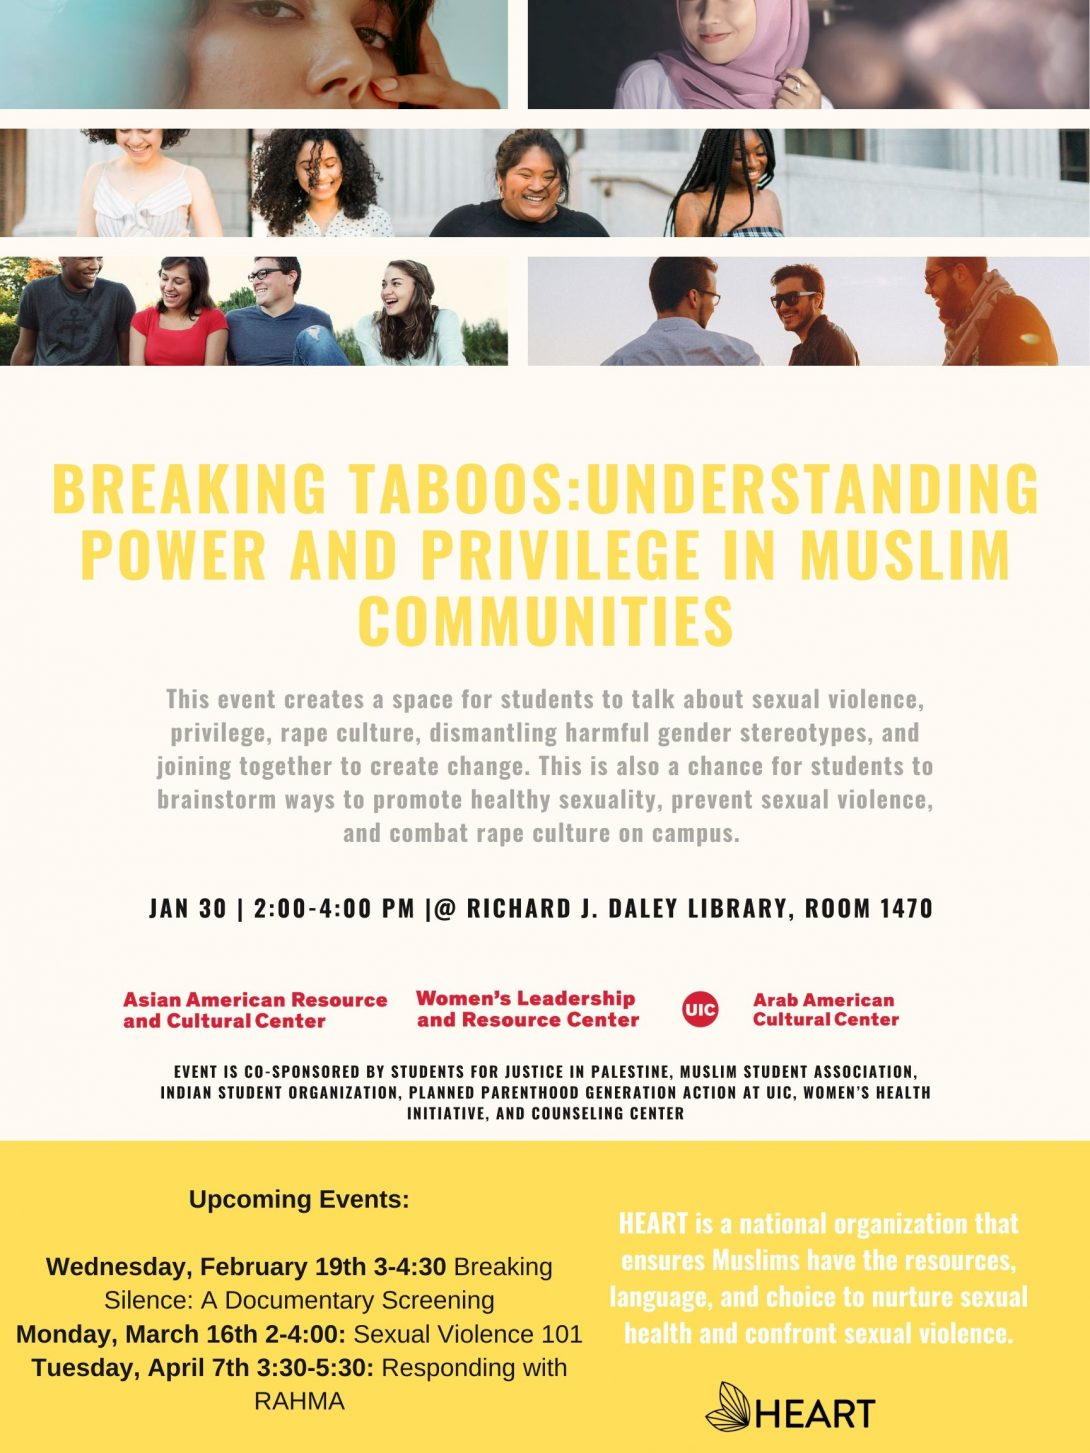 Flyer has three sections, the top is a photo collage of different people's faces. The middle band is a series of writing starting with Title of Event: Breaking Taboos: Understanding Power and Privilege in Muslim Communities. a short description of the event, the date and location and the sponsoring organizations. The bottom third is a yellow band that lists the upcoming three workshops in this series and provides the mission of the group HEART which is a national organization that ensures Muslims have the resources, language, and choice to nurture sexual health and confront sexual violence.